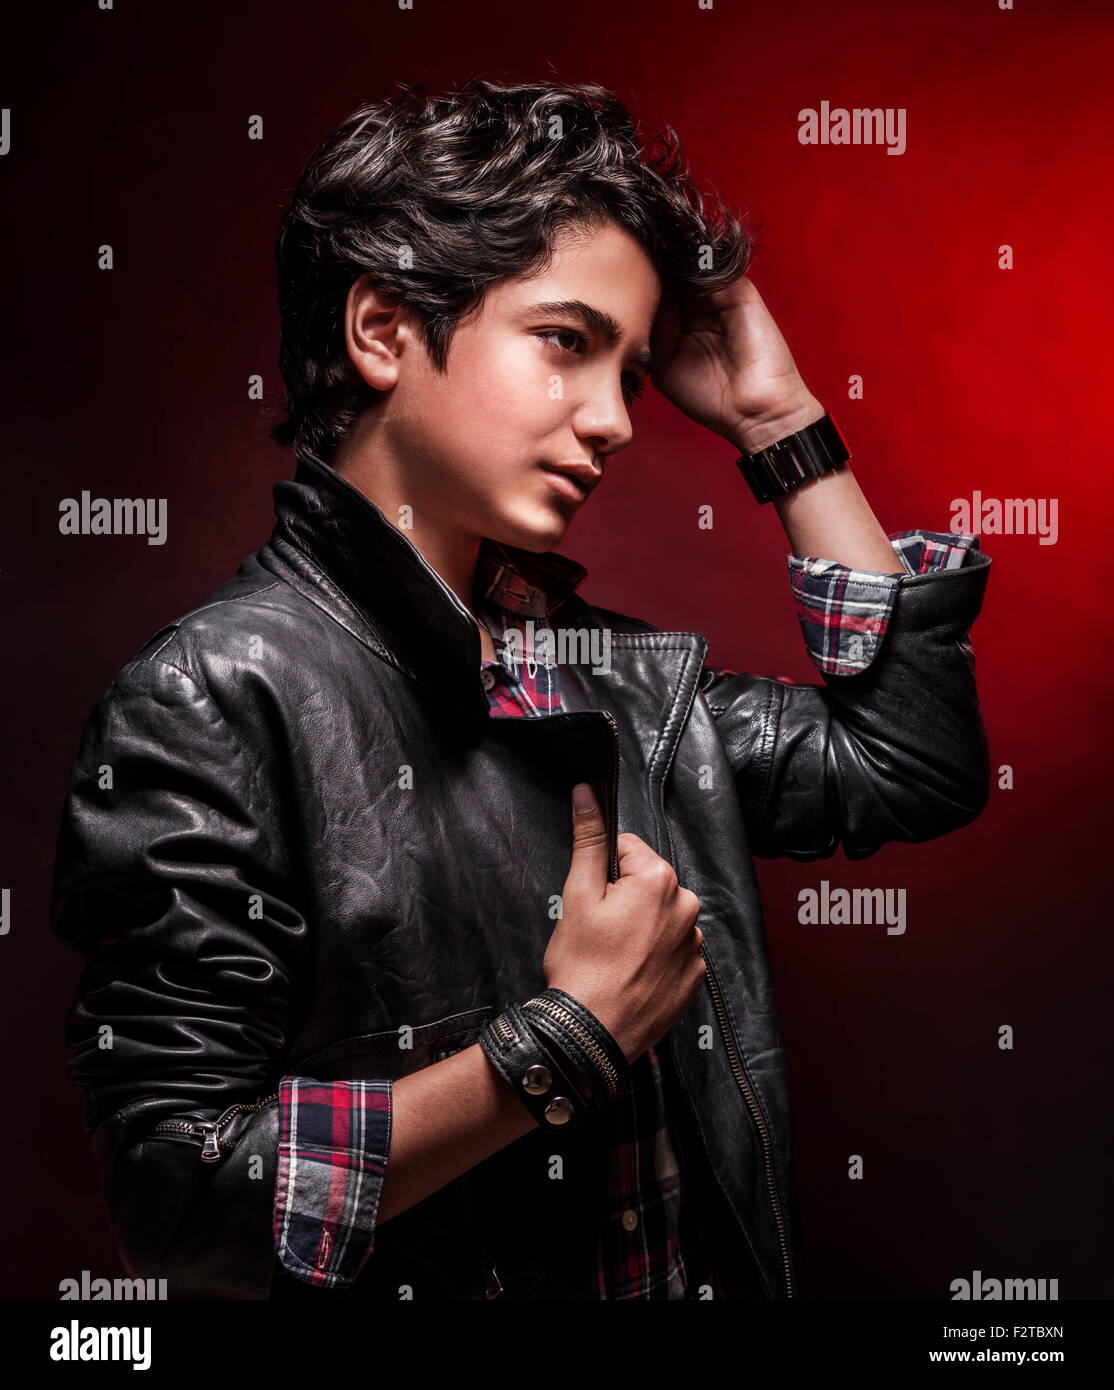 Portrait Of Teen Boy Wearing Leather Jacket And Touching His Stylish